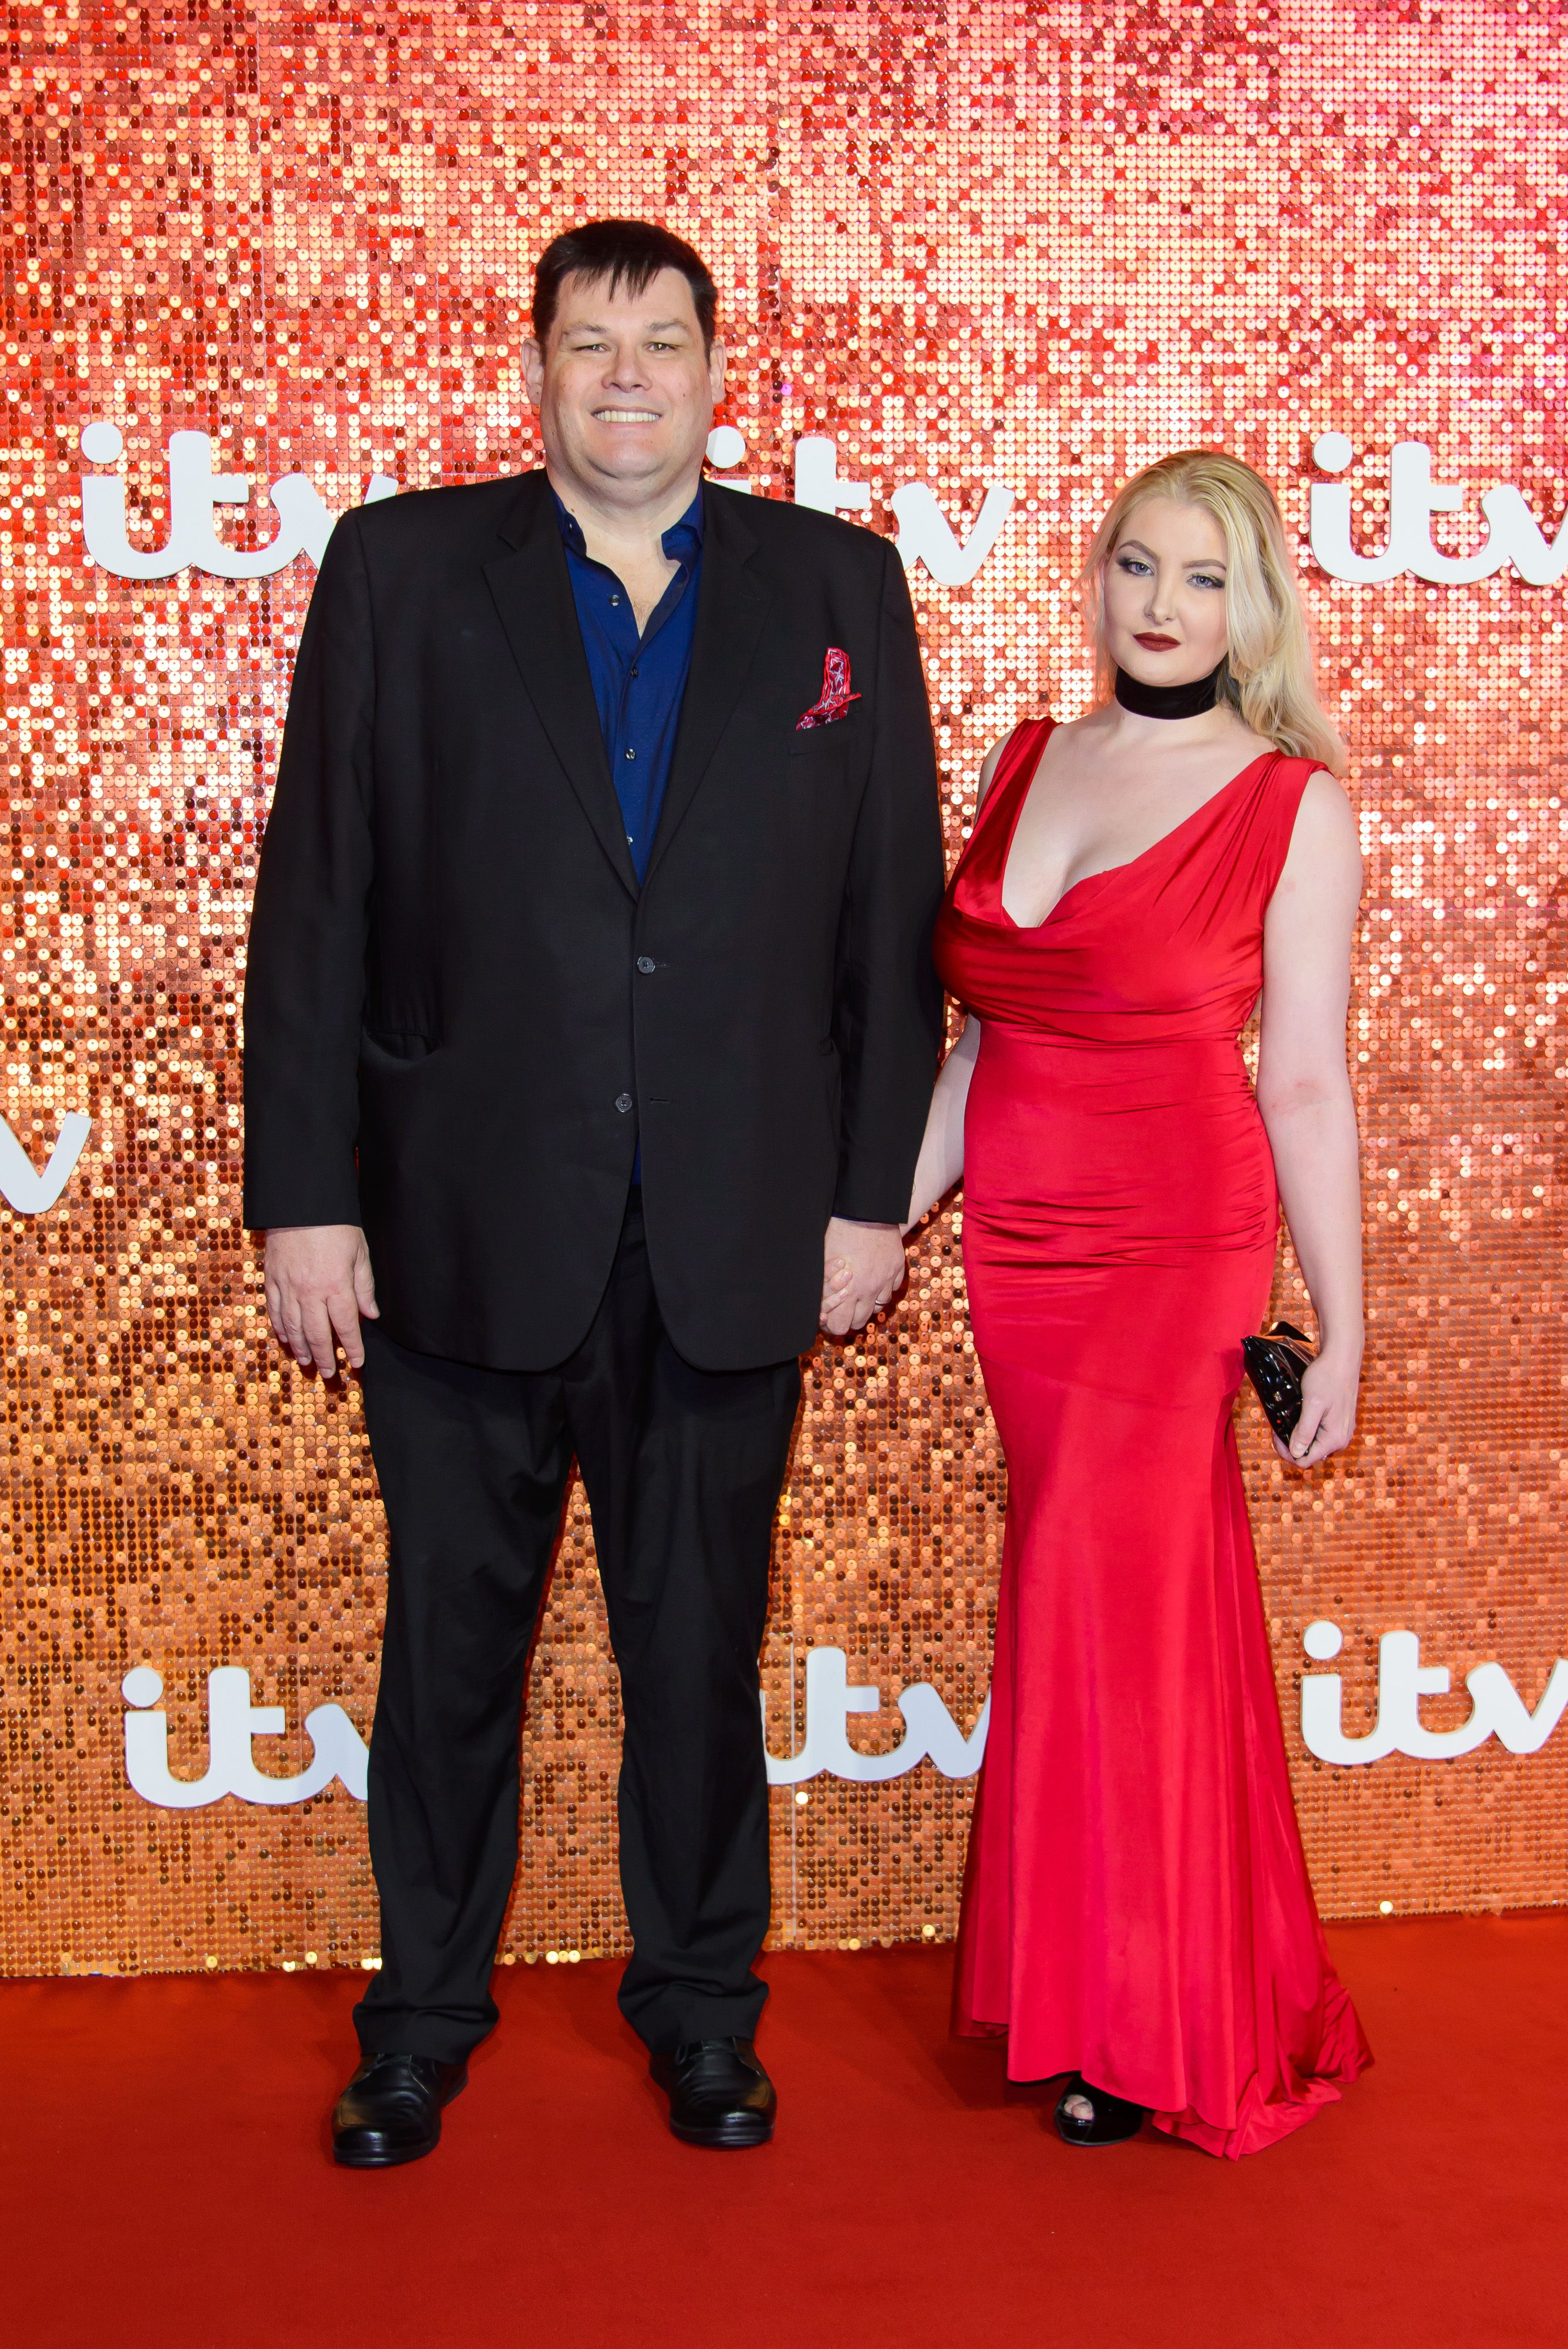 The Chase's Mark Labbett splits from wife amid open marriage